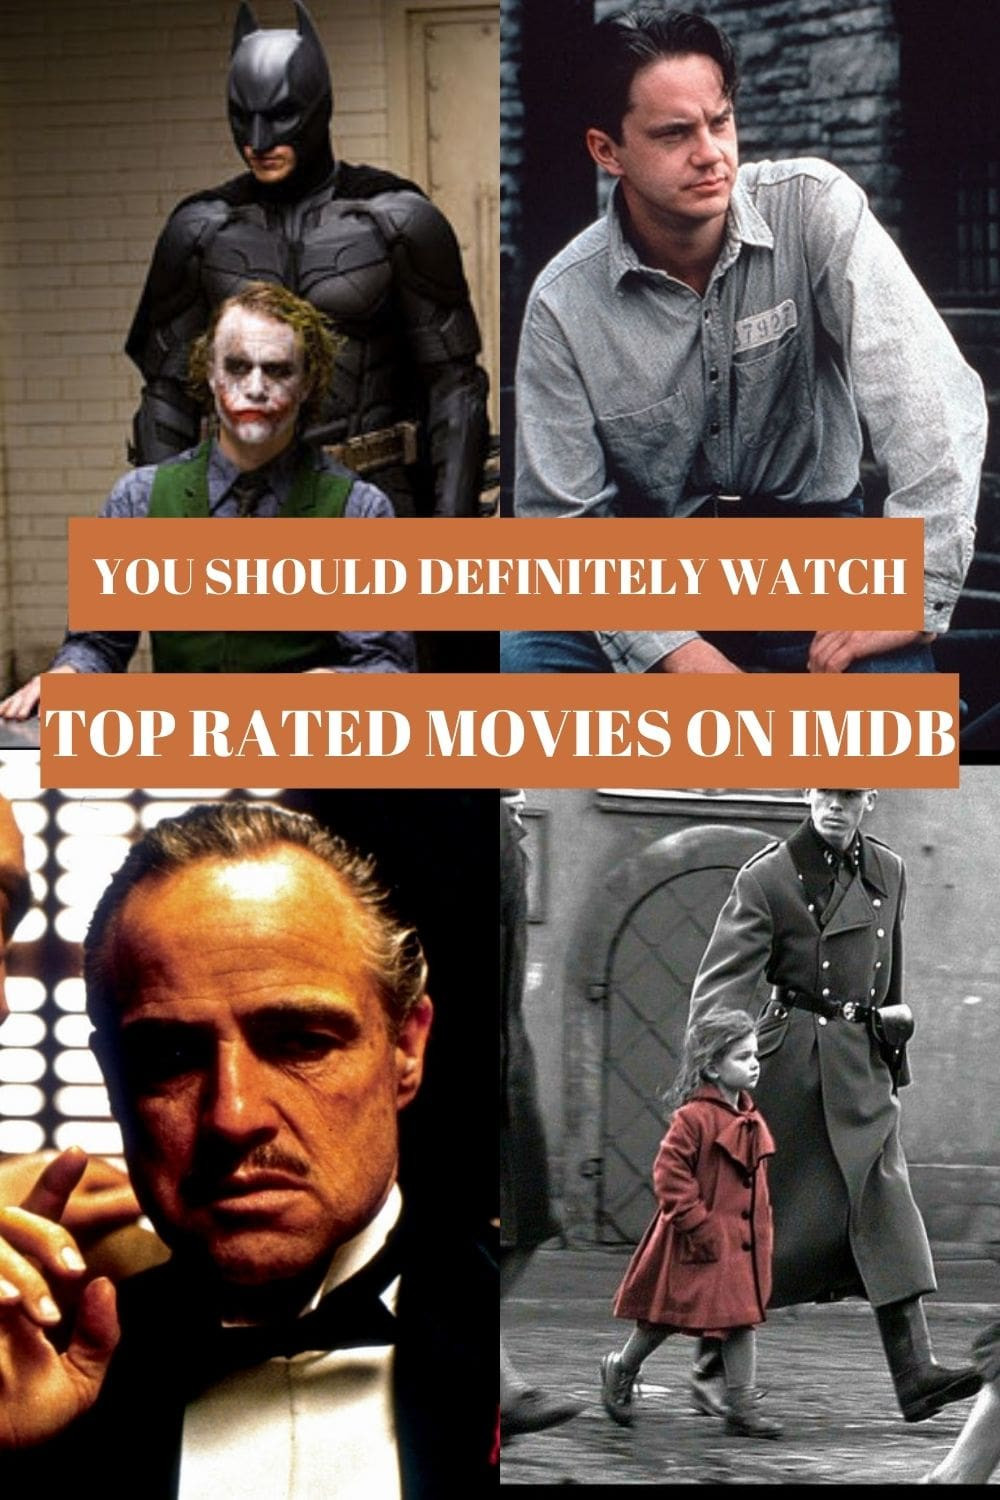 Top Rated Movies on IMDb - 6 High rated movies